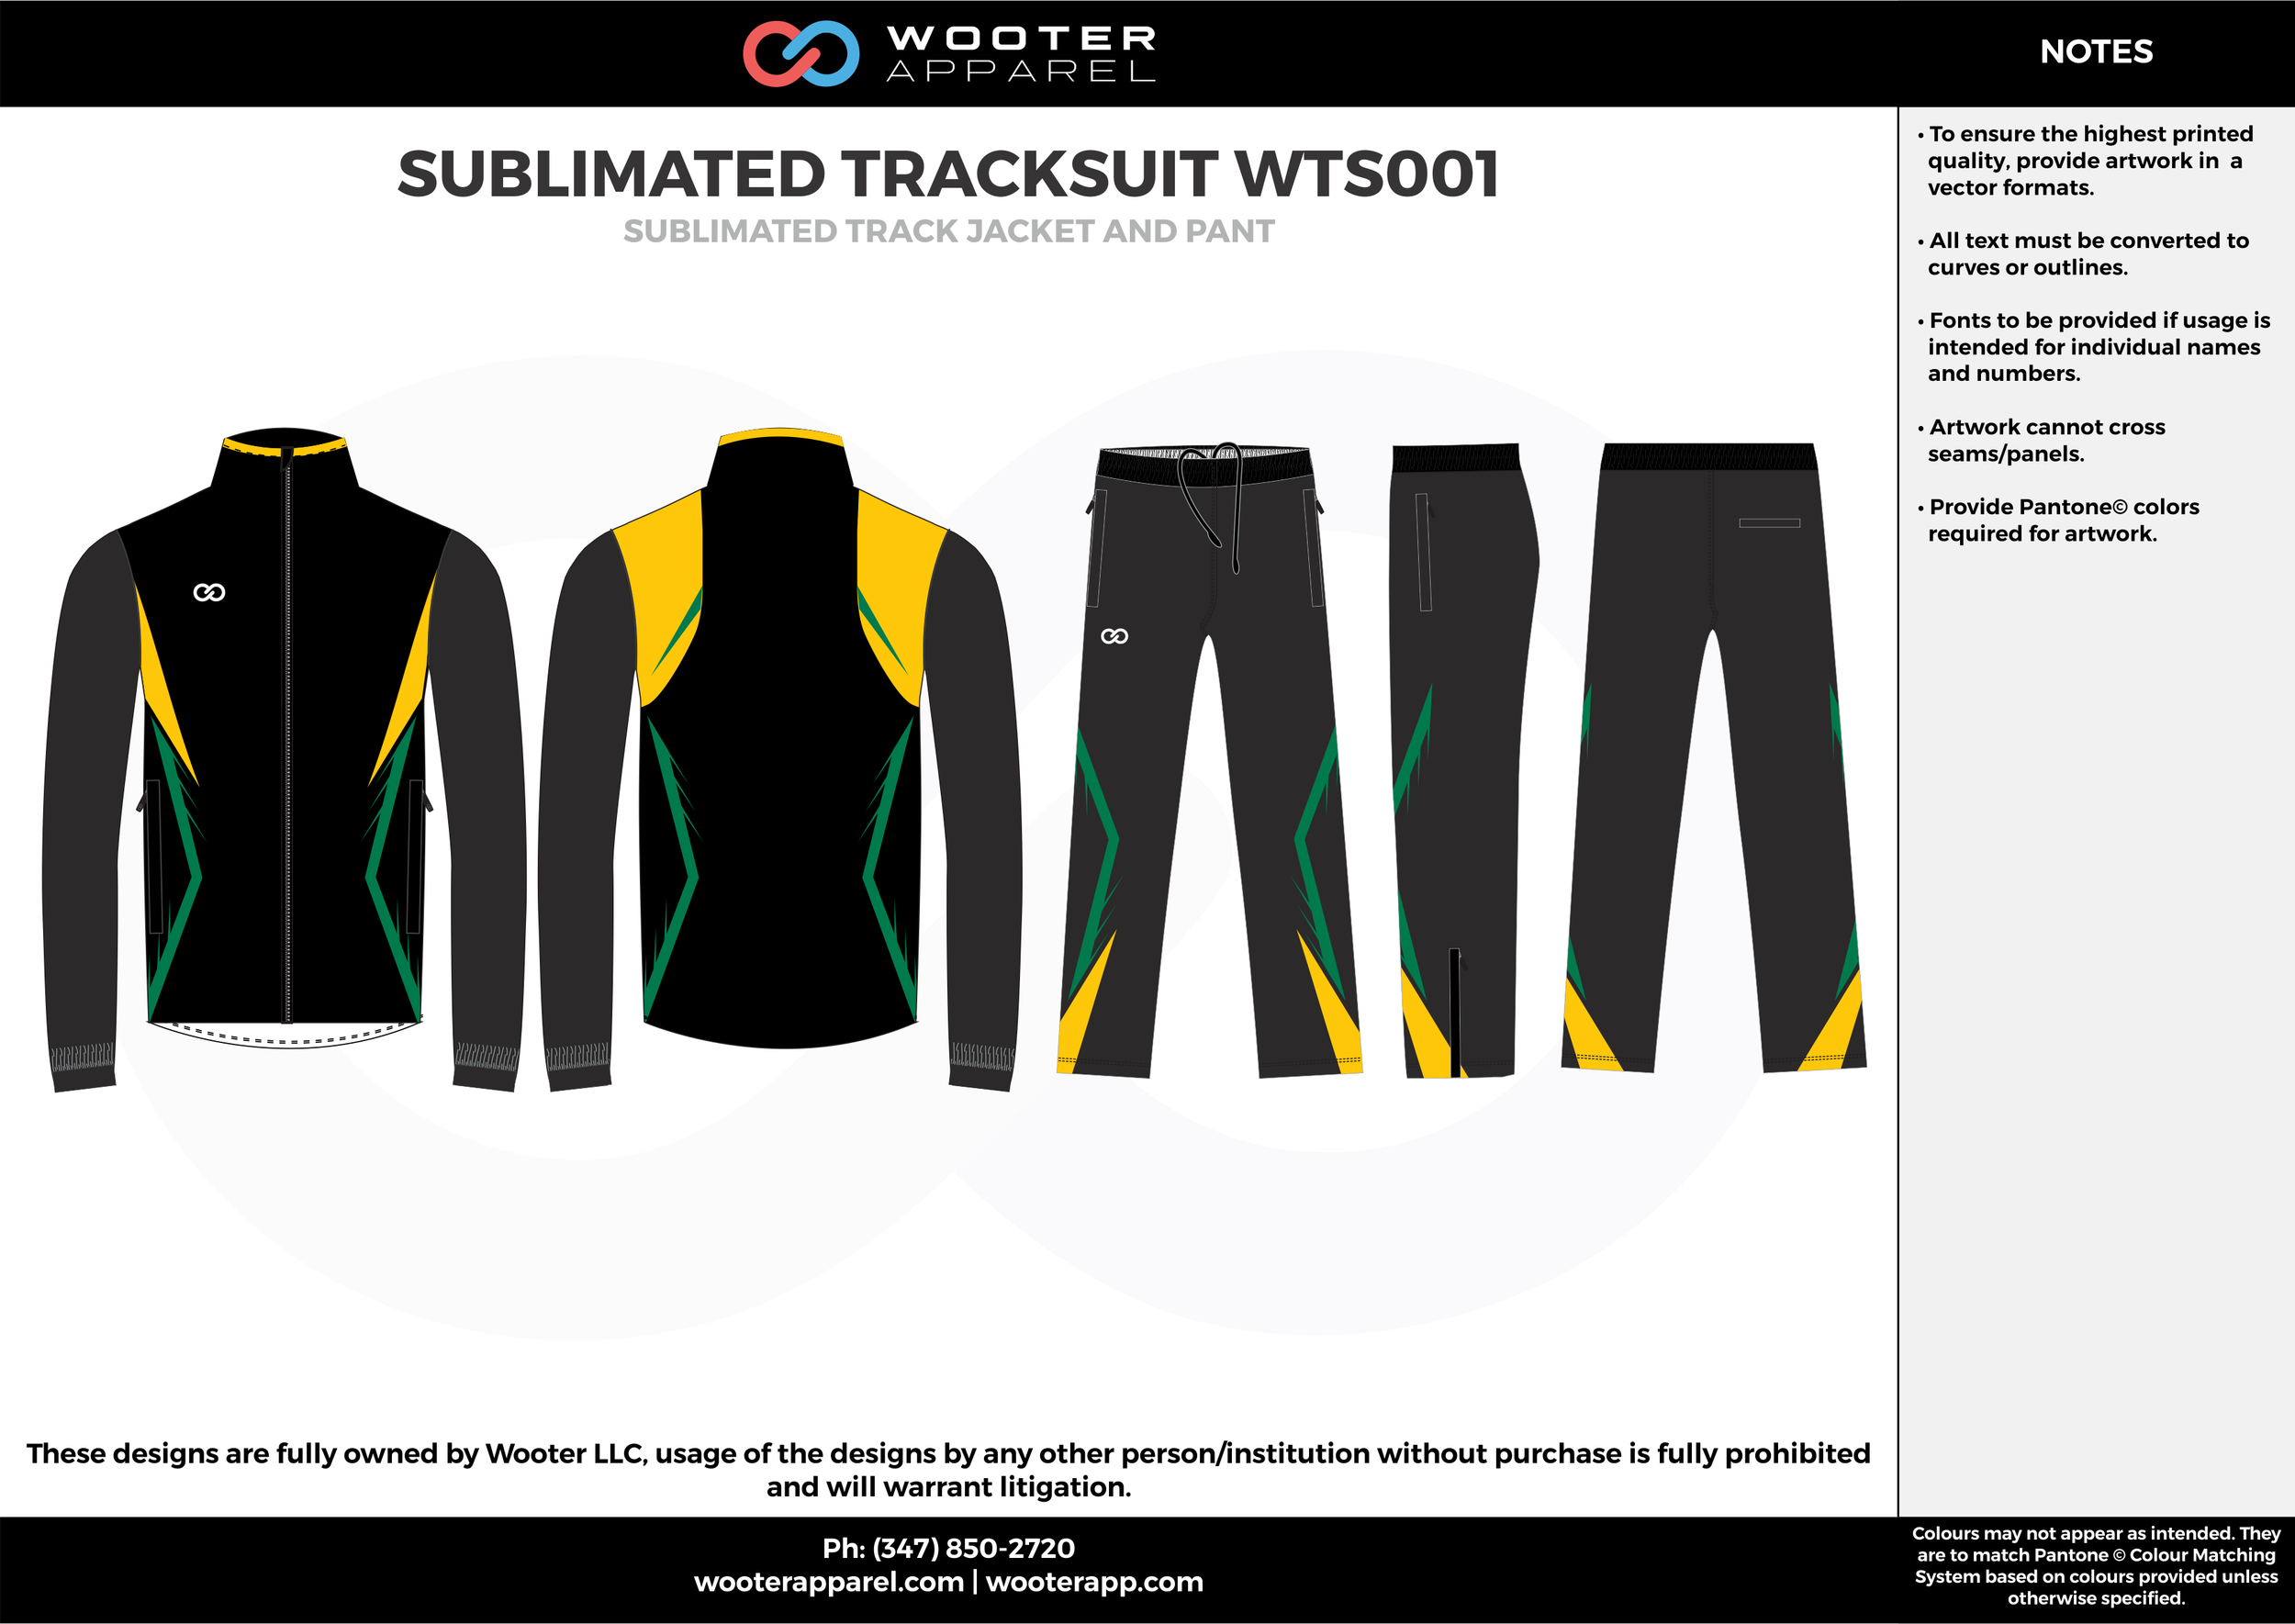 SUBLIMATED TRACKSUIT WTS001 black yellow green gray Track Jacket, Track Pants, Tracksuit, Warmup Suit